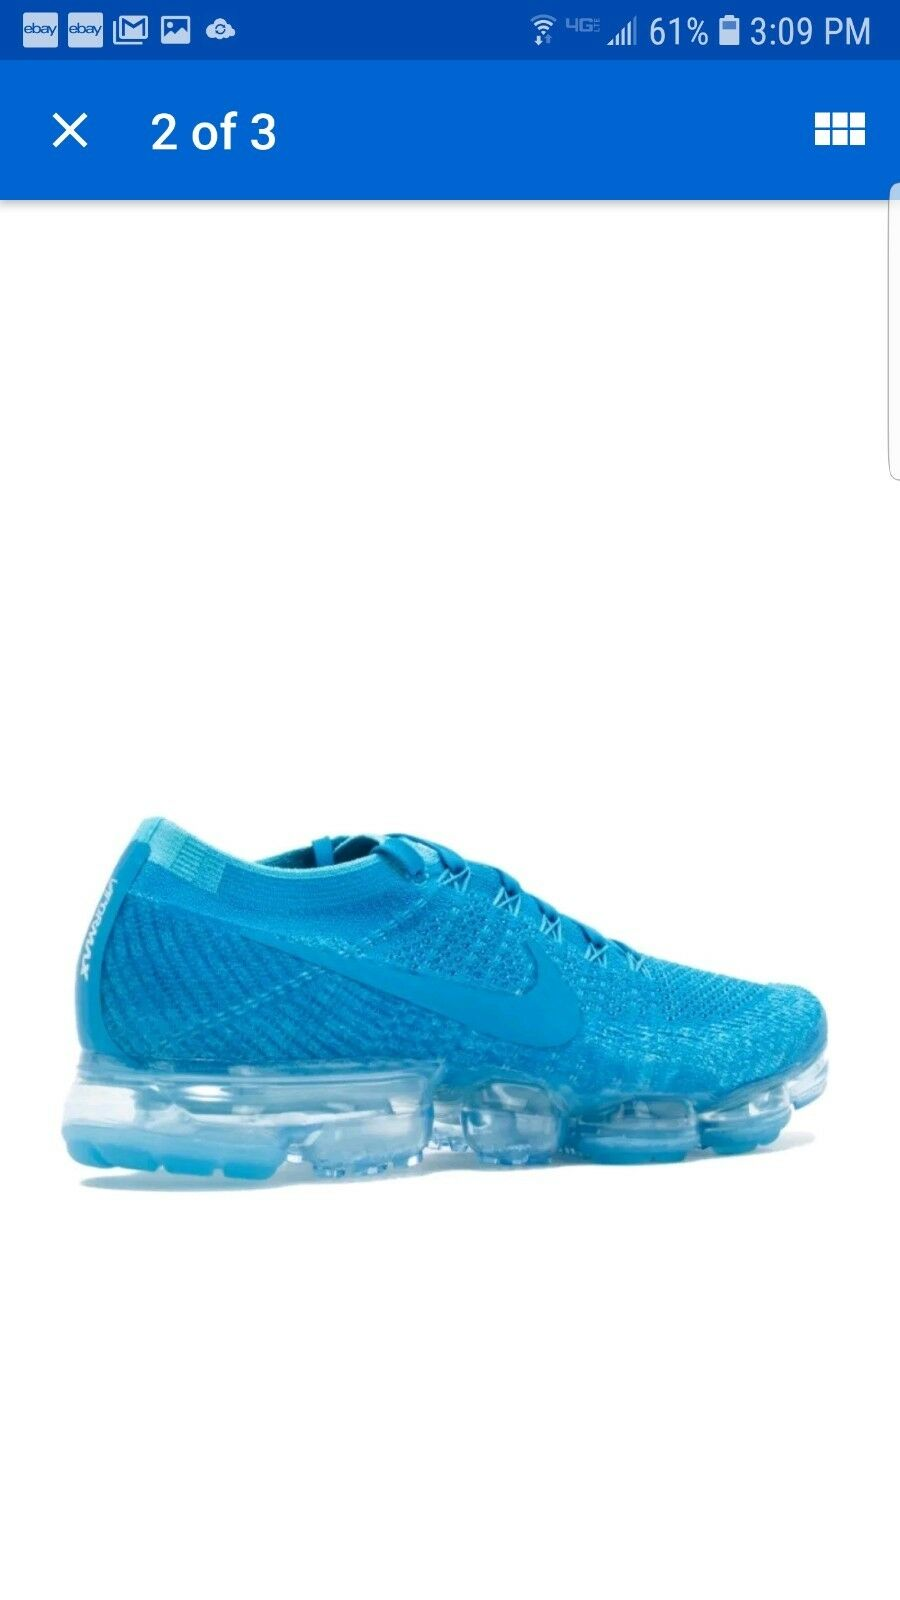 91997ad9c7ea6 DS Nike Air Vapormax Flyknit Orbit Blue Size 12 849558-402 for sale ...